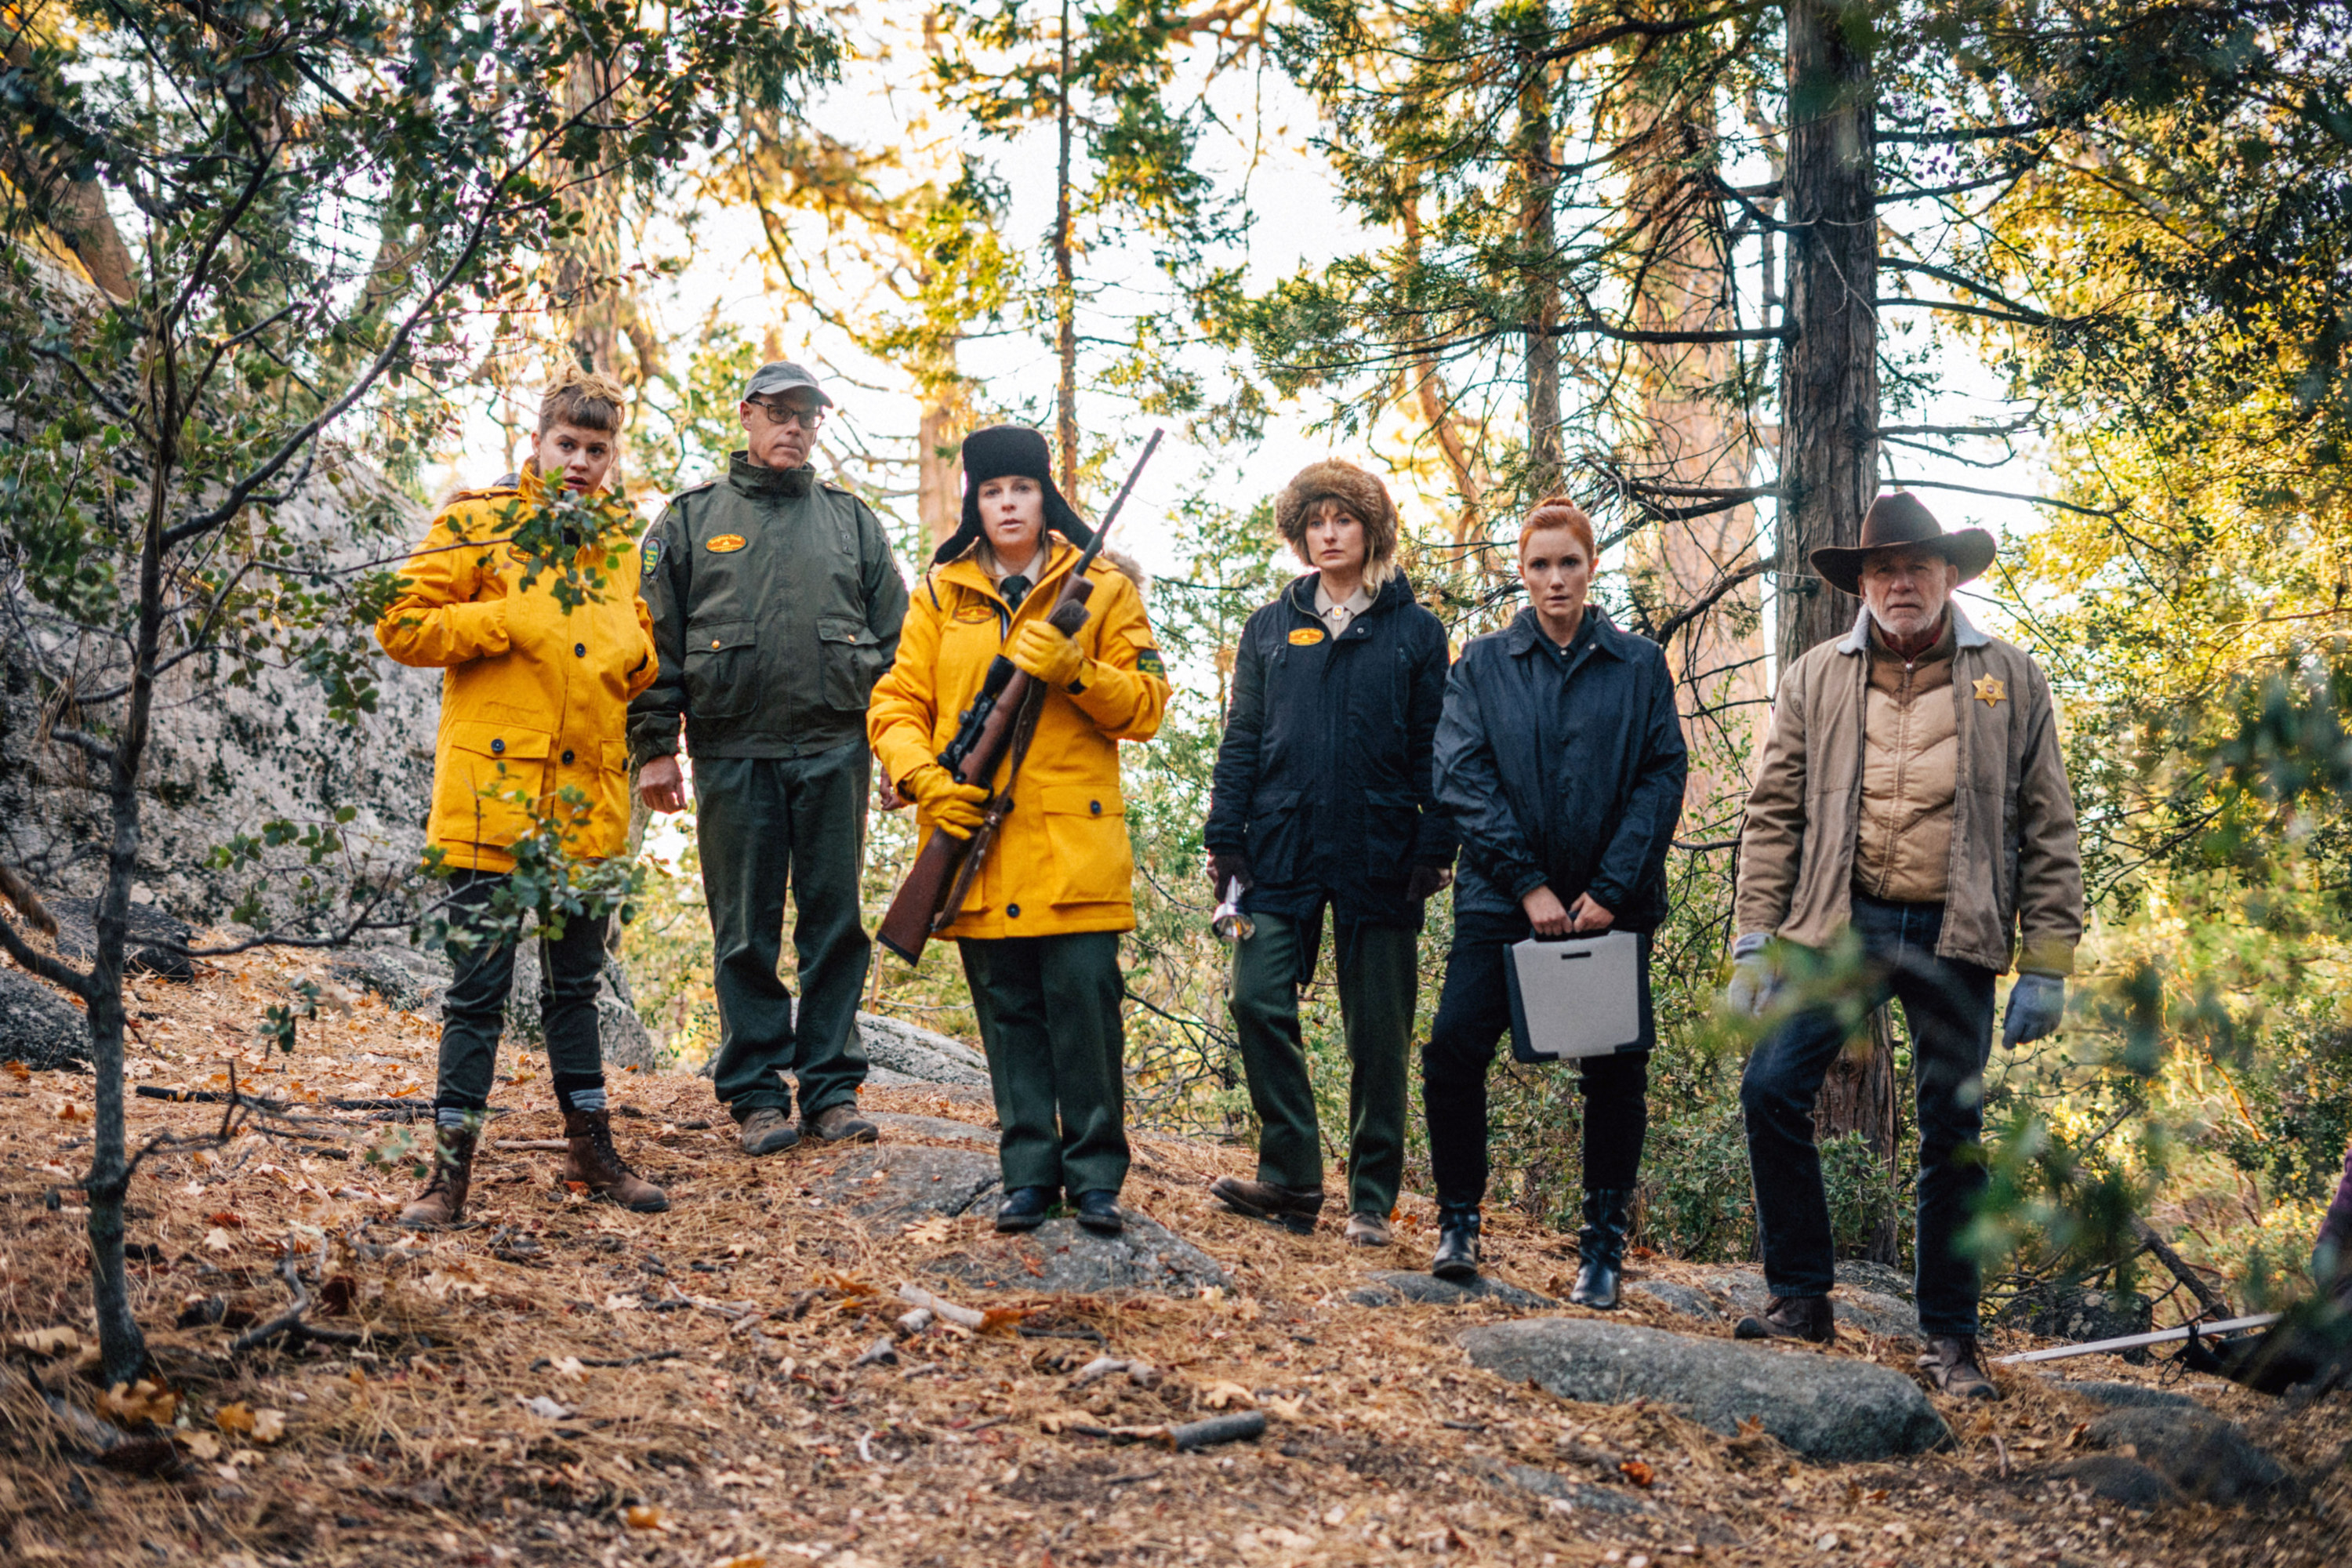 A crew of park rangers look into the forest